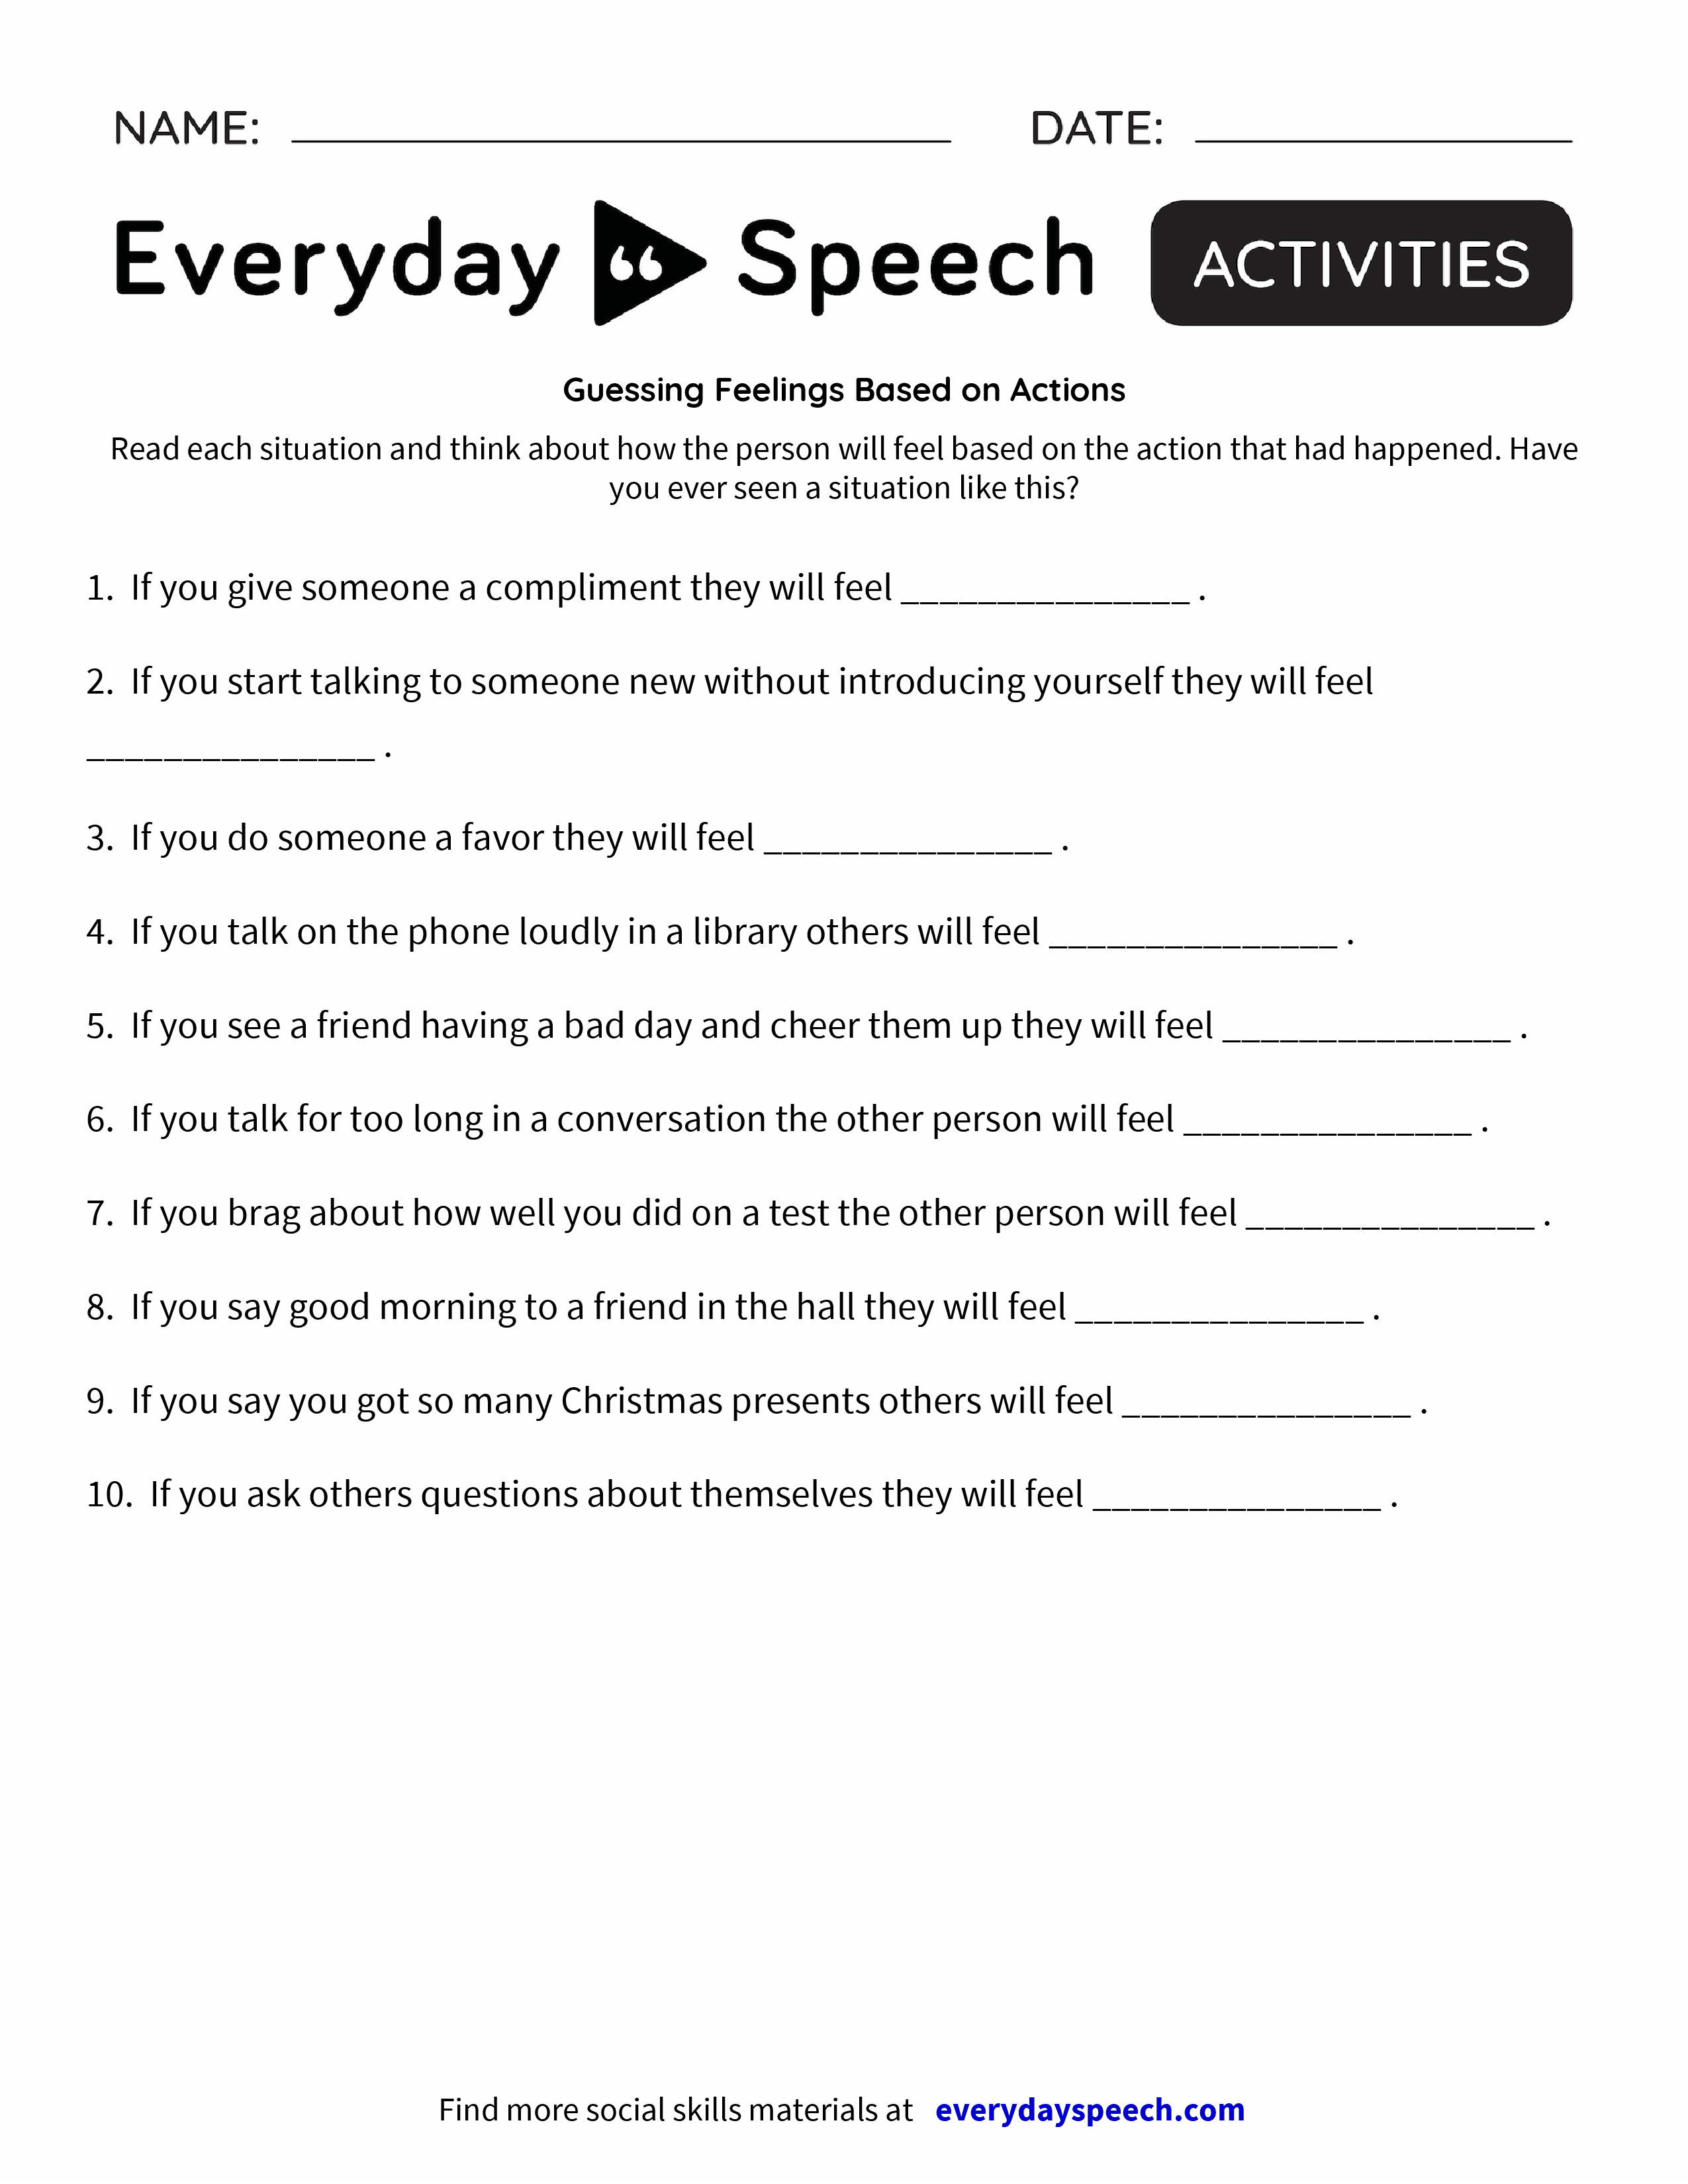 worksheet Healthy Relationship Worksheets 200 most downloaded worksheets everyday speech guessing feelings based on actions